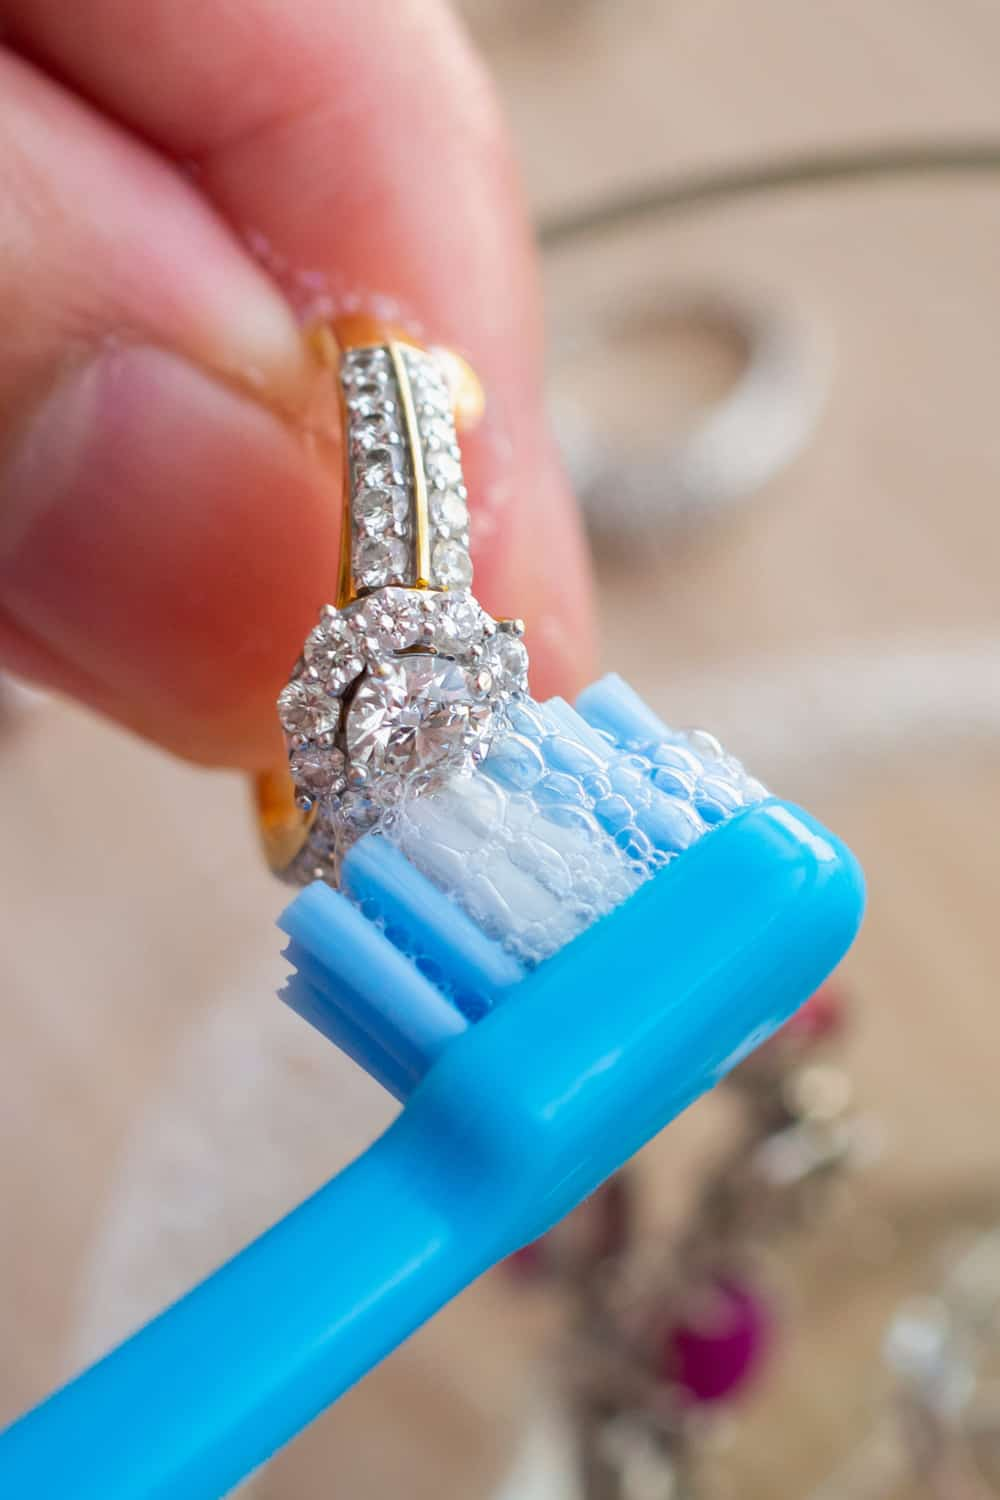 Clean your white gold rings using soap and baking powder